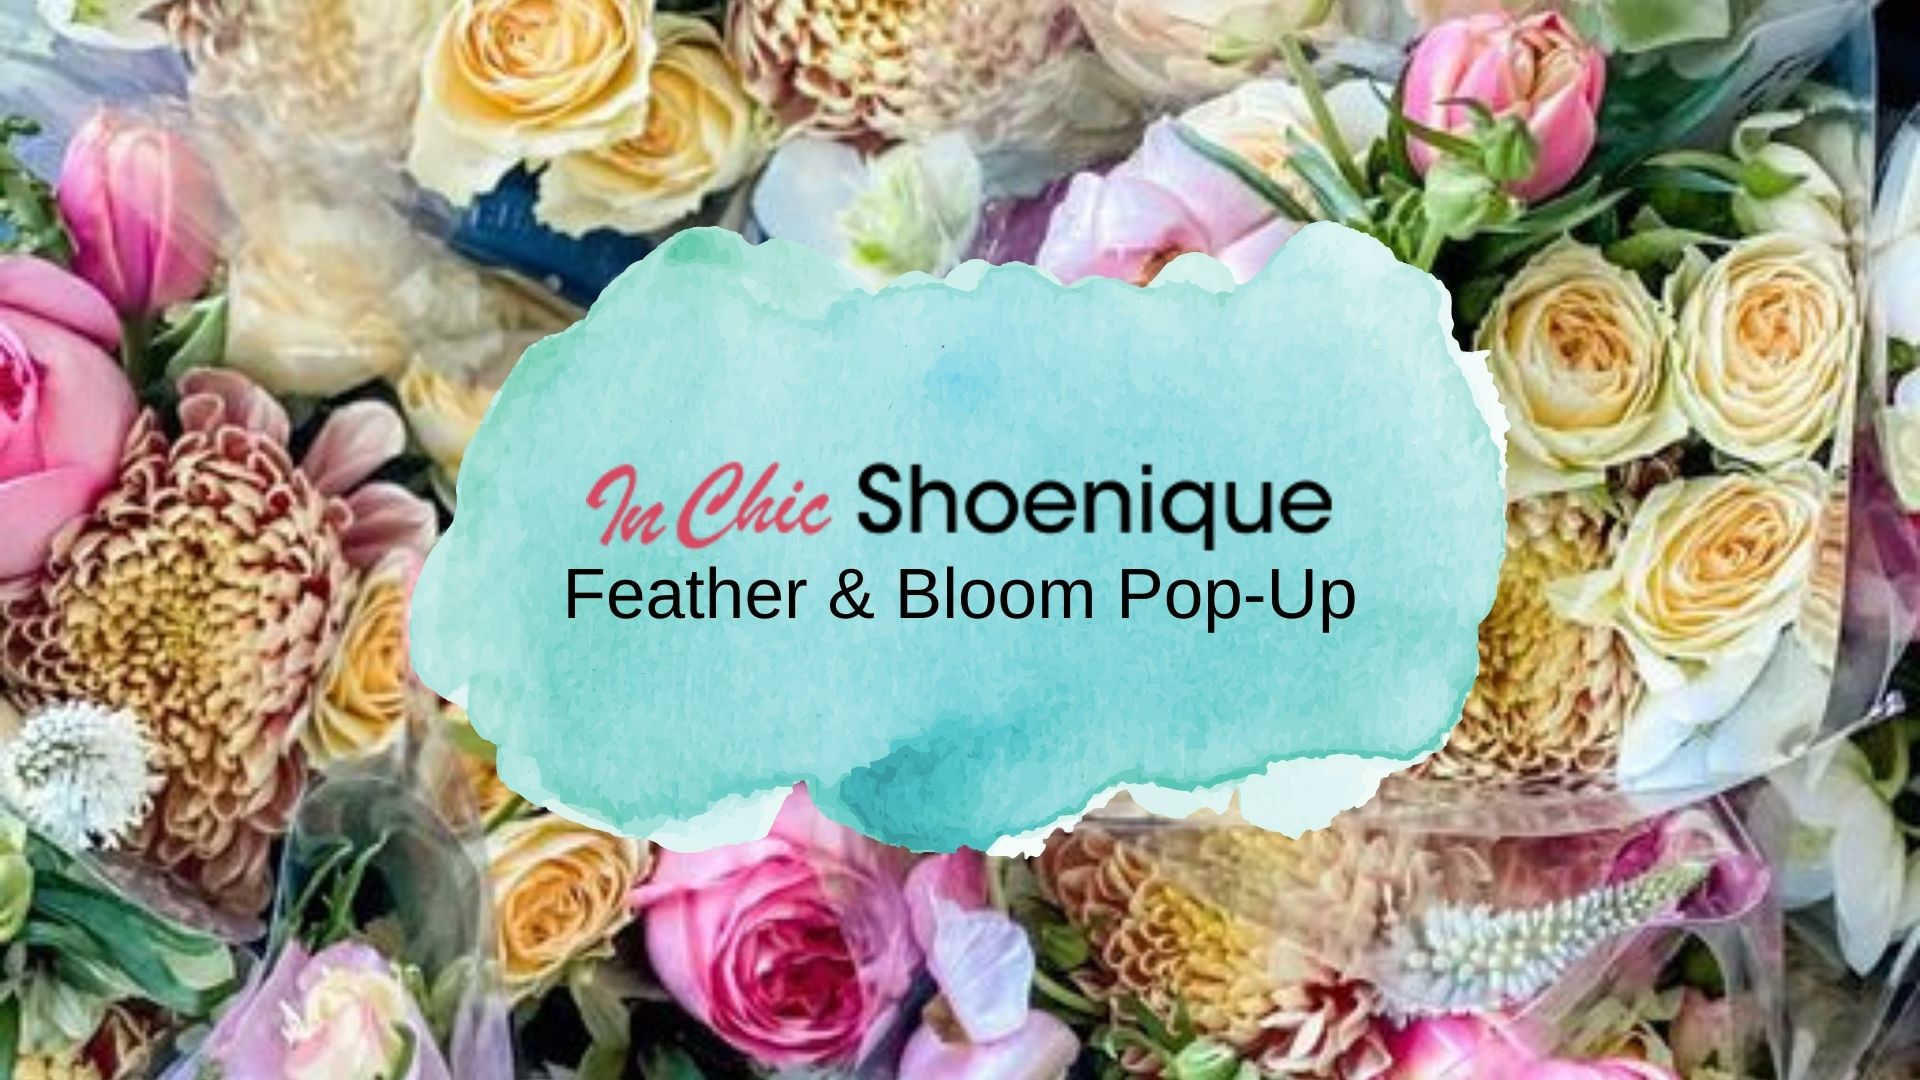 Feather & Bloom Pop Up at In Chic Shoenique